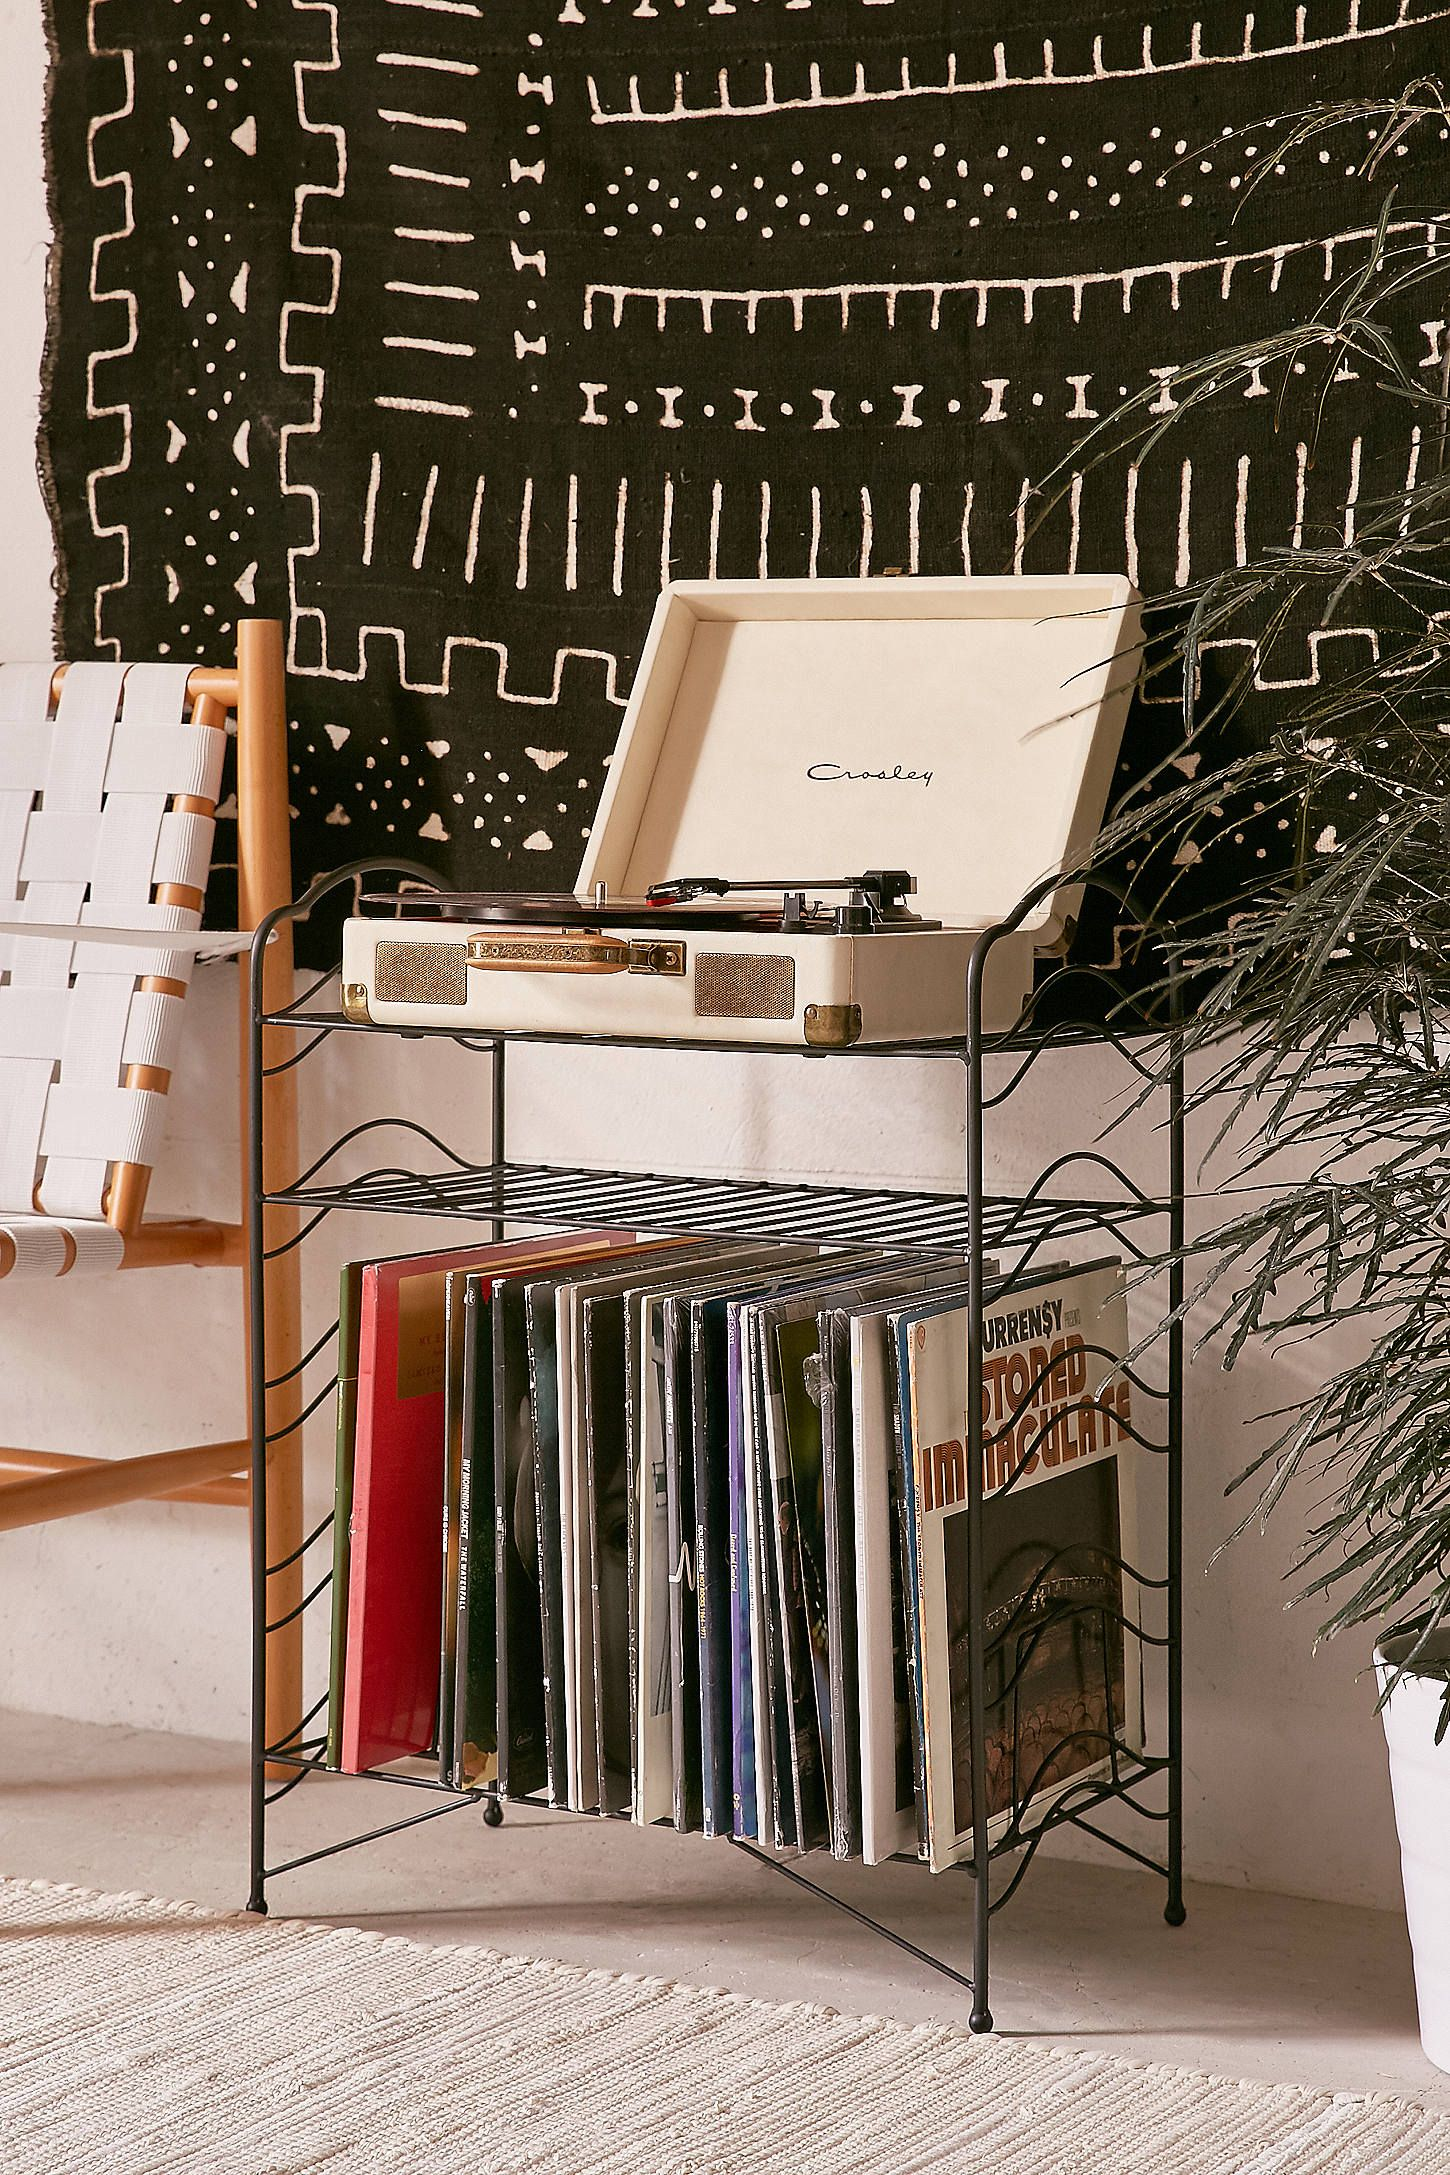 plus shelves vinyl conjunction in of uk with also diy full ideas amazon together storage record shelf size